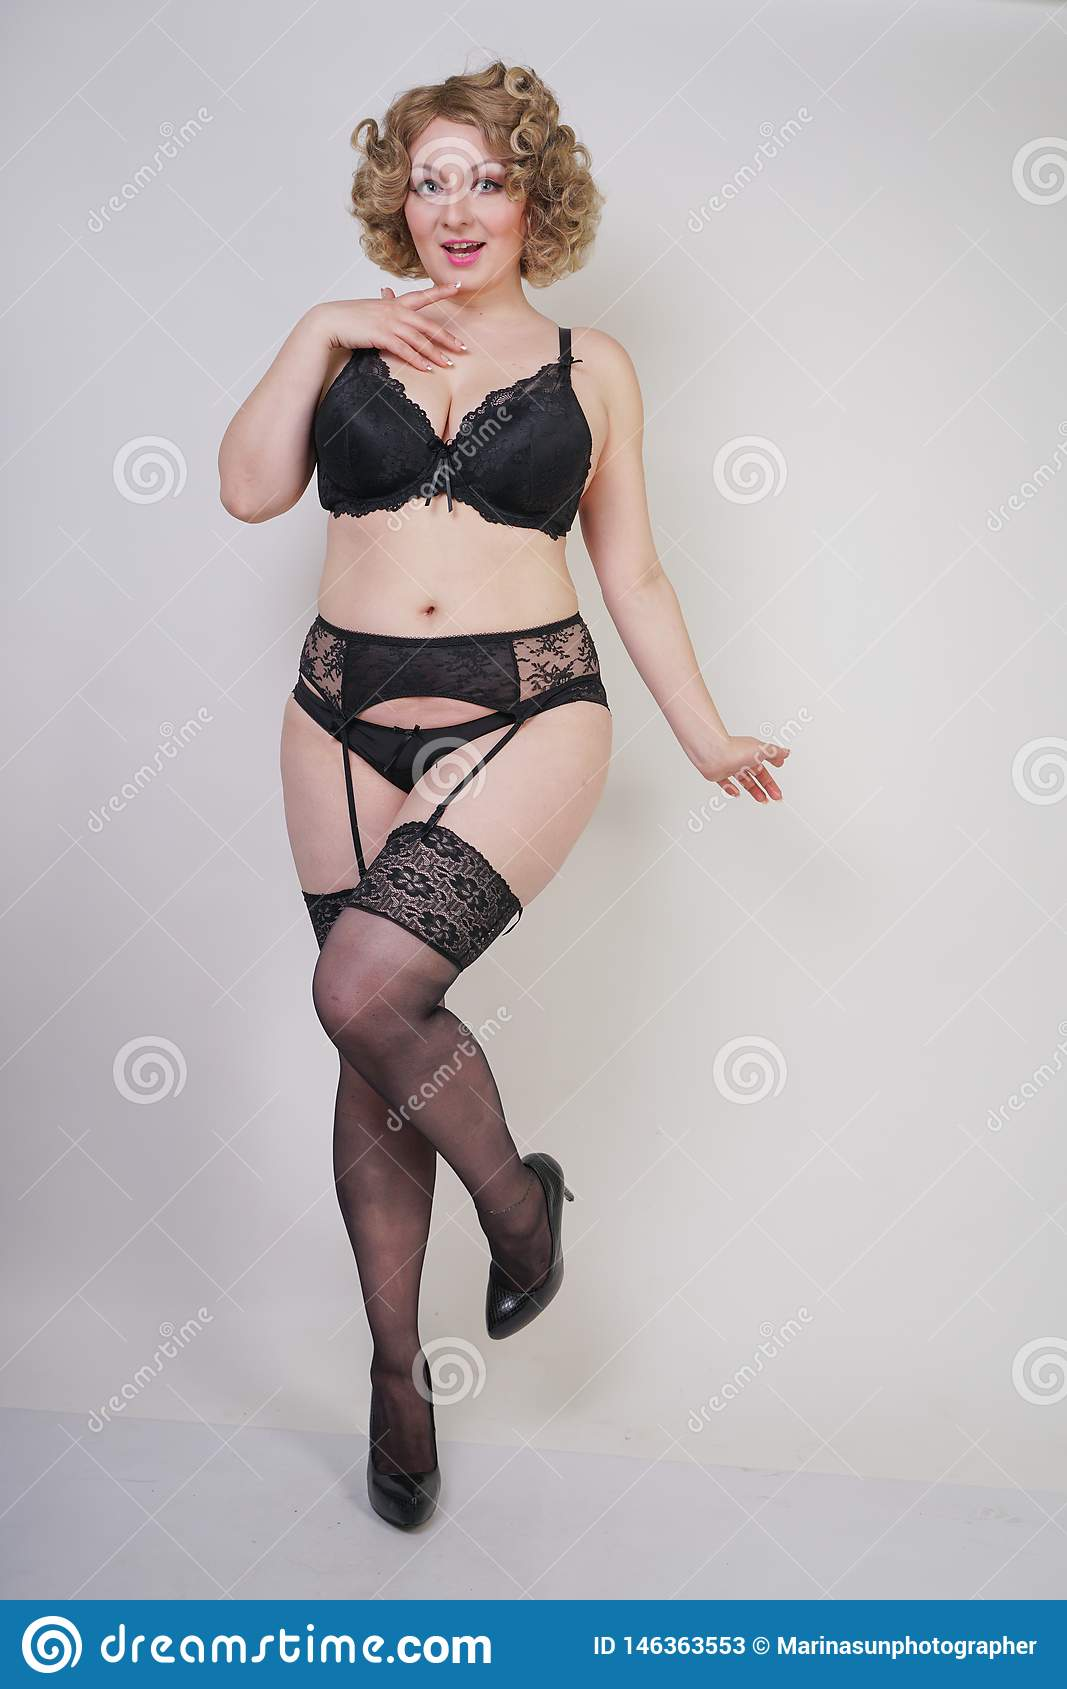 Mature chubby women in lingerie Pretty Caucasian Chubby Woman With Plus Size Body And Pale Skin Wearing Black Sexy Underwear With Stockings And Garterbelt On Whit Stock Photo 146363553 Megapixl